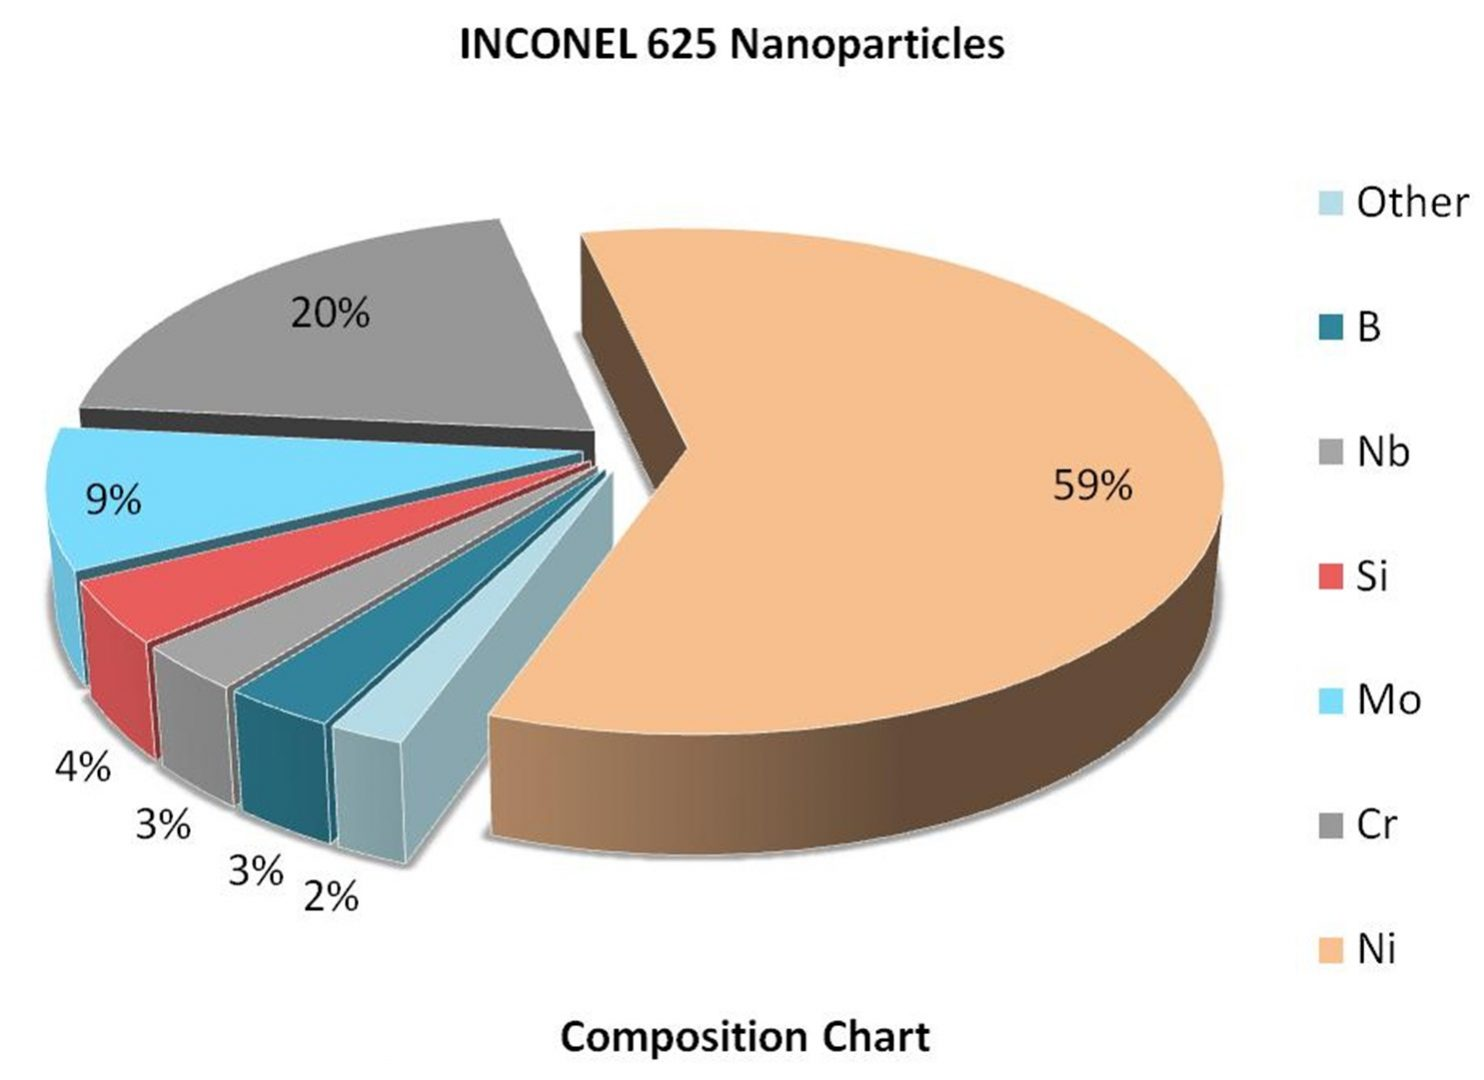 Composition Chart – INCONEL 625 Powder